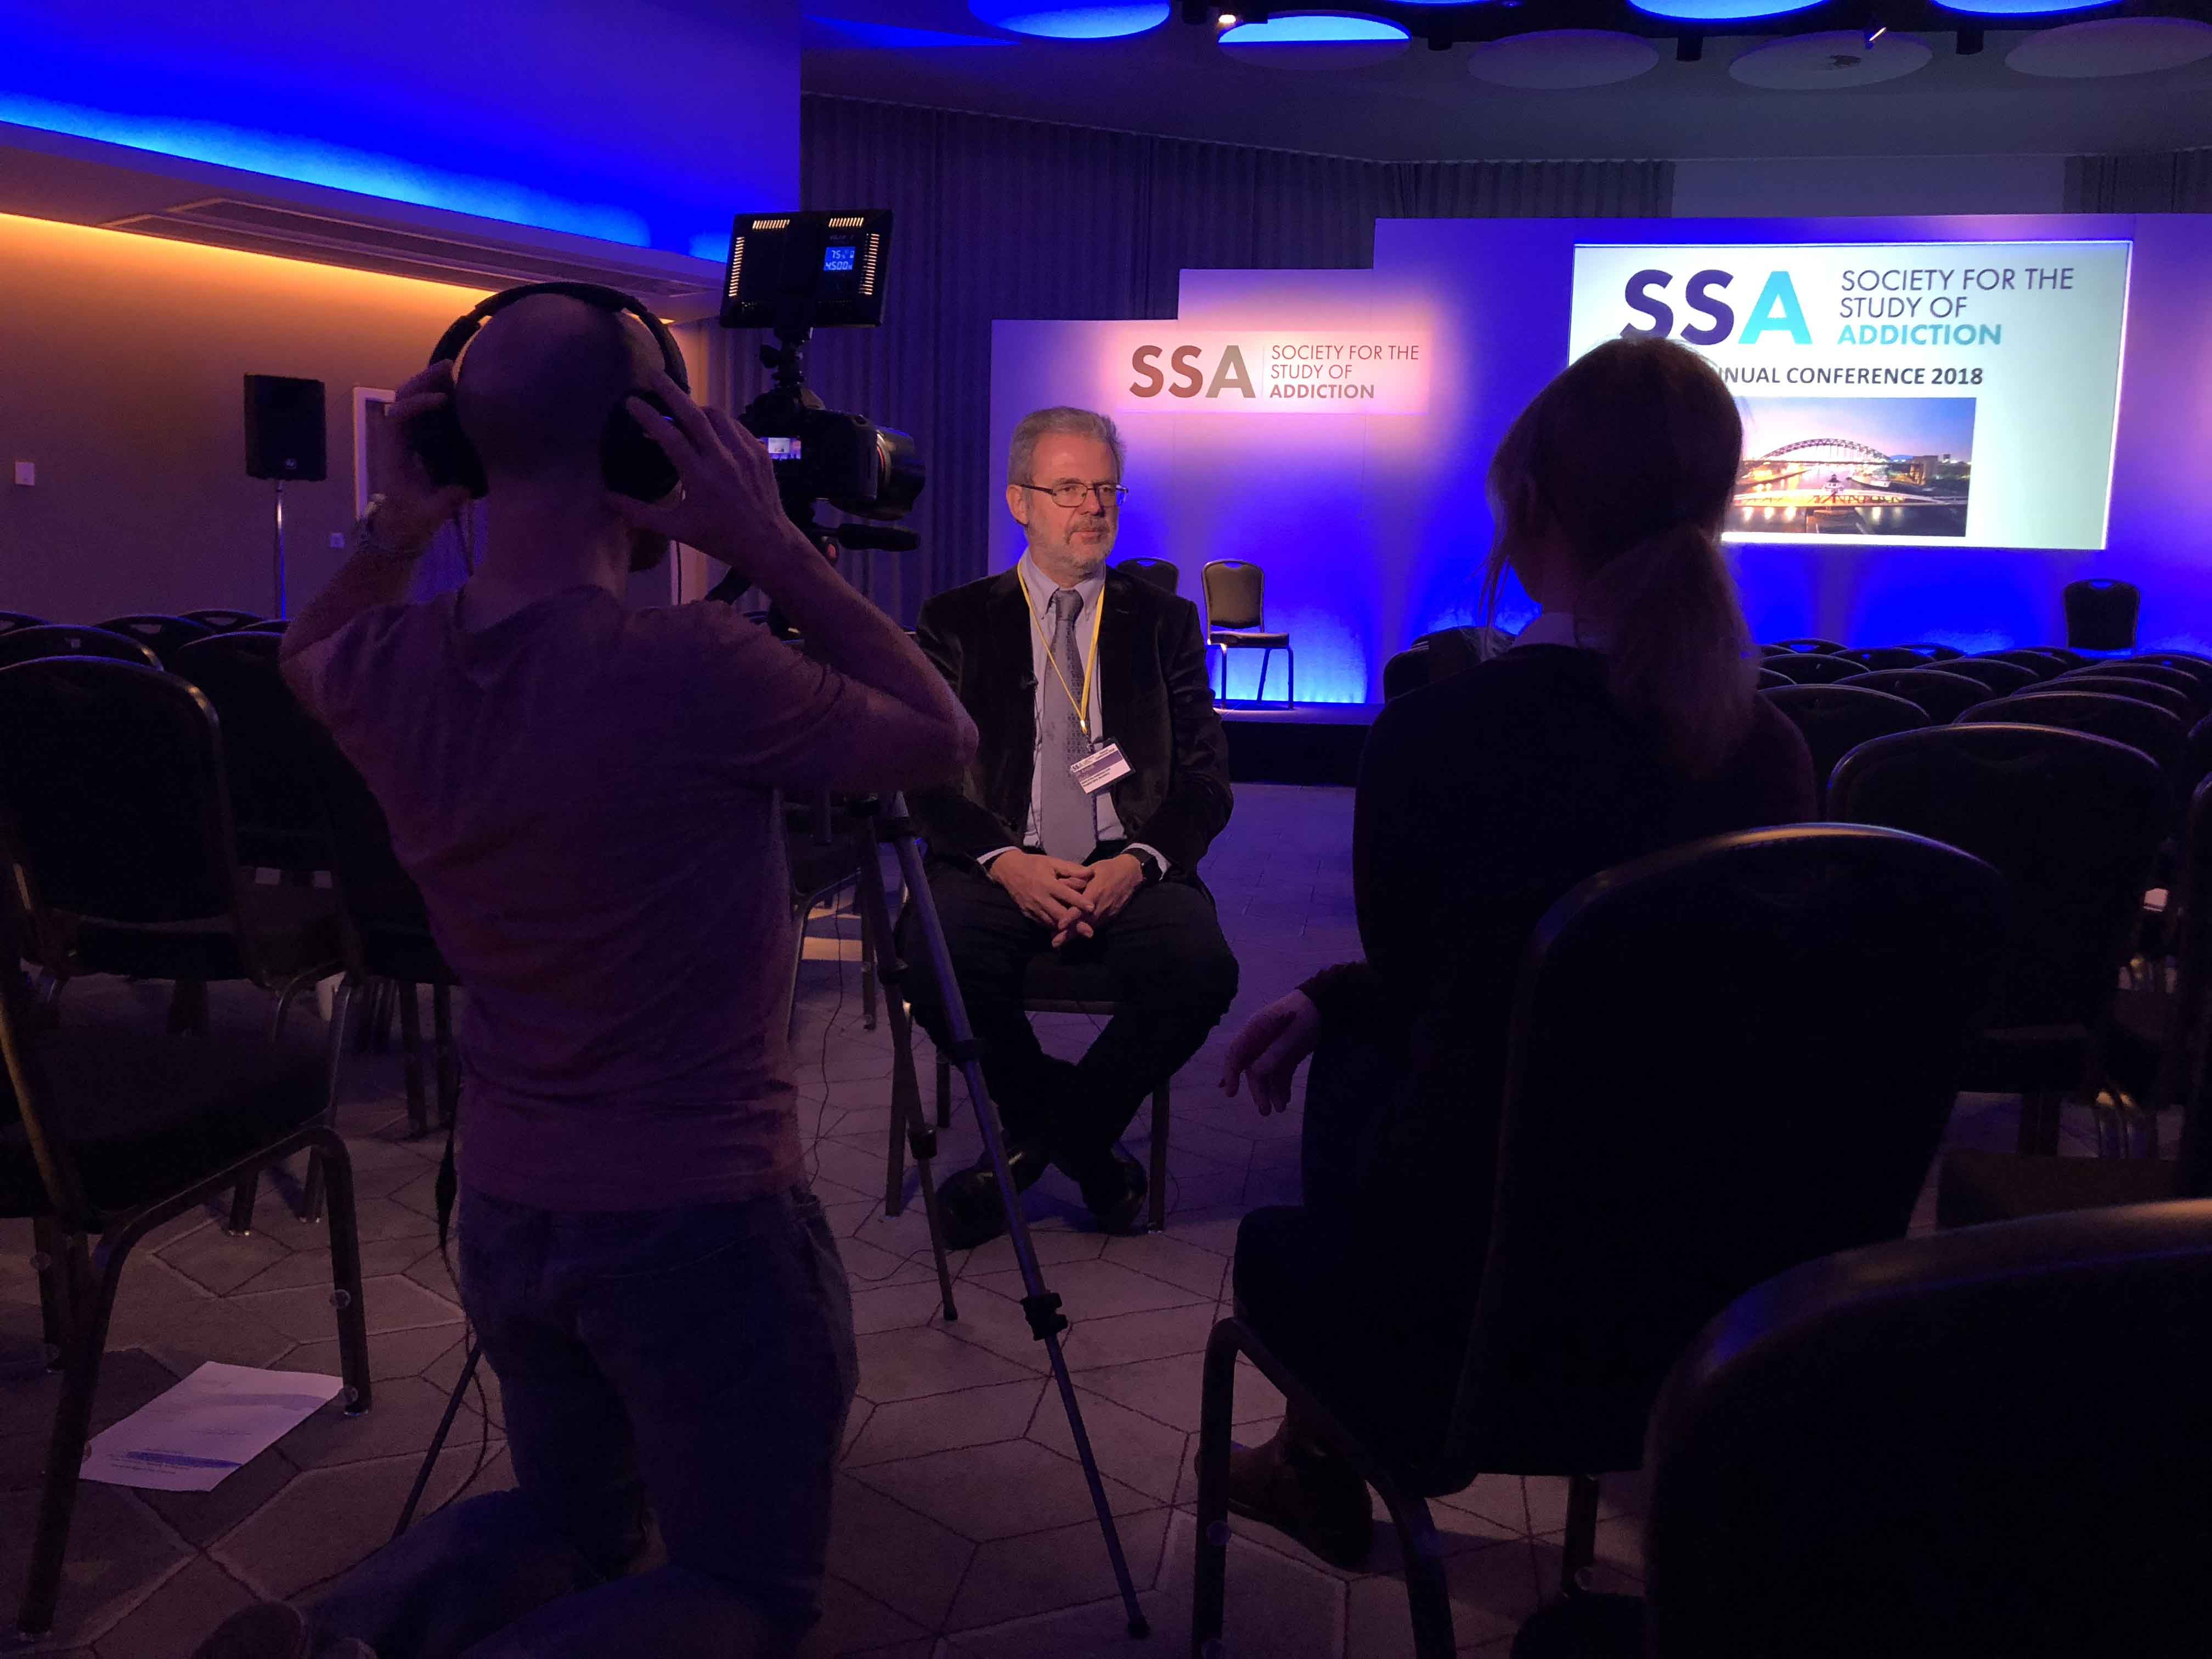 Filming in the auditorium at the SSA Annual Conference